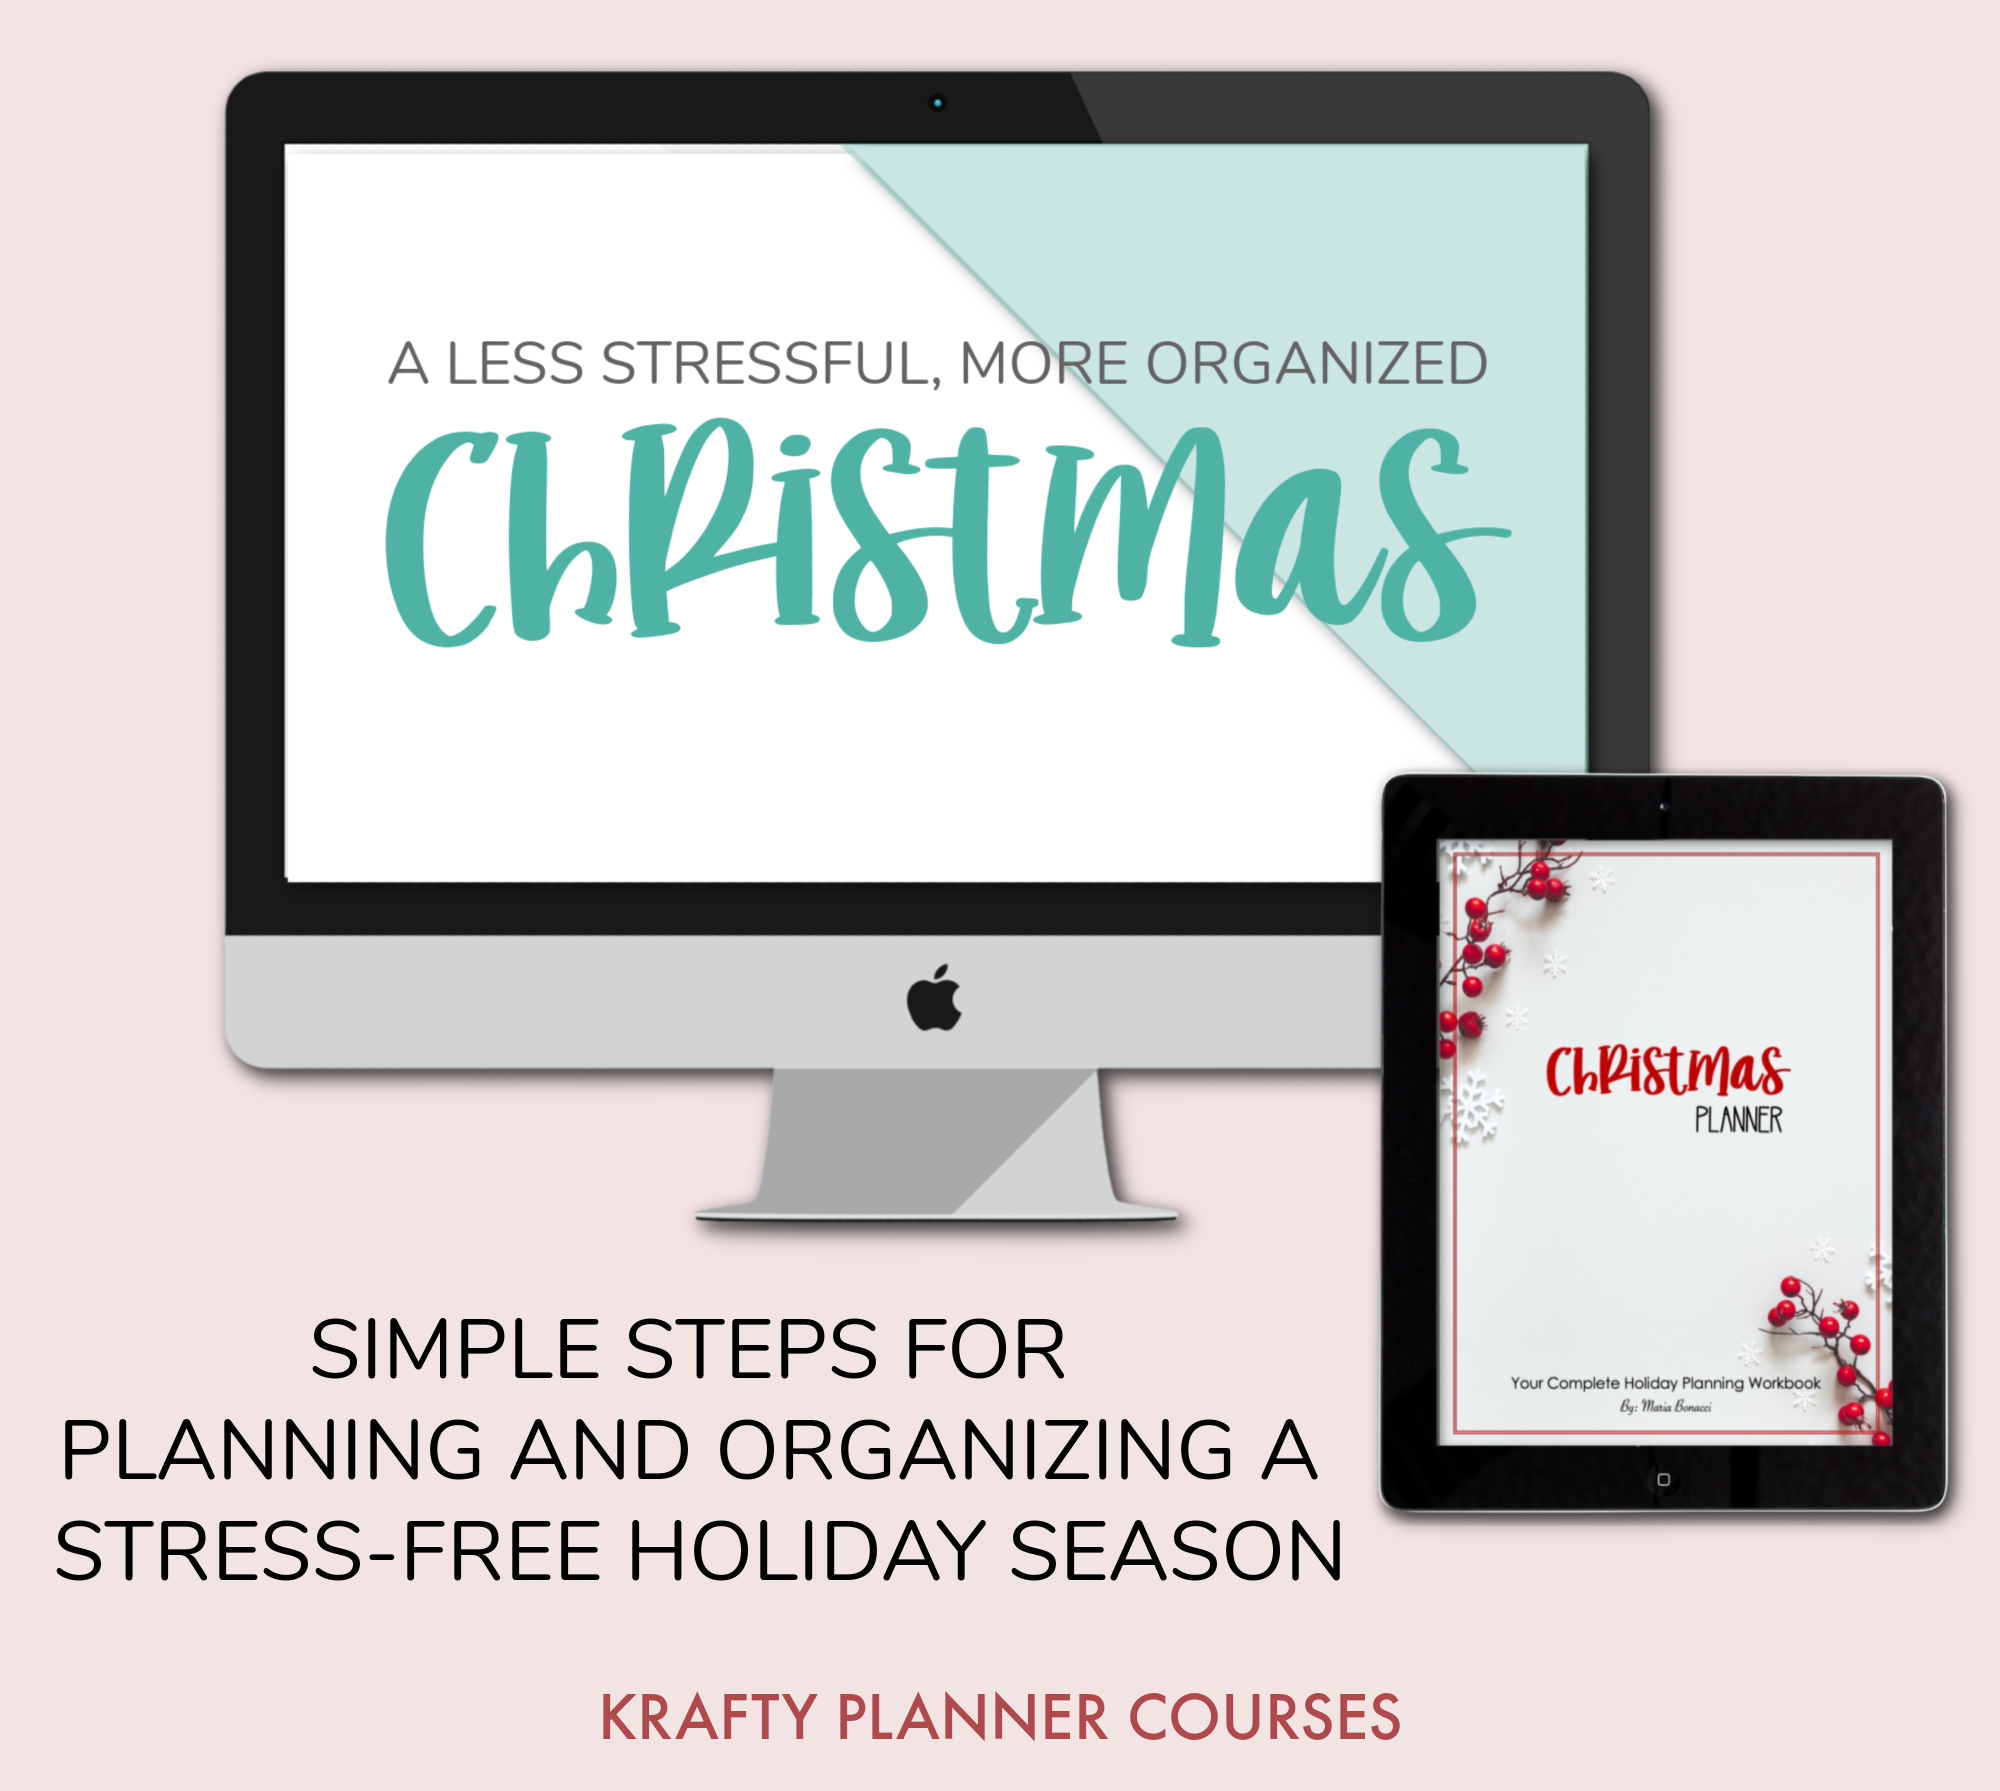 Stress-Free Christmas Planning eCourse!